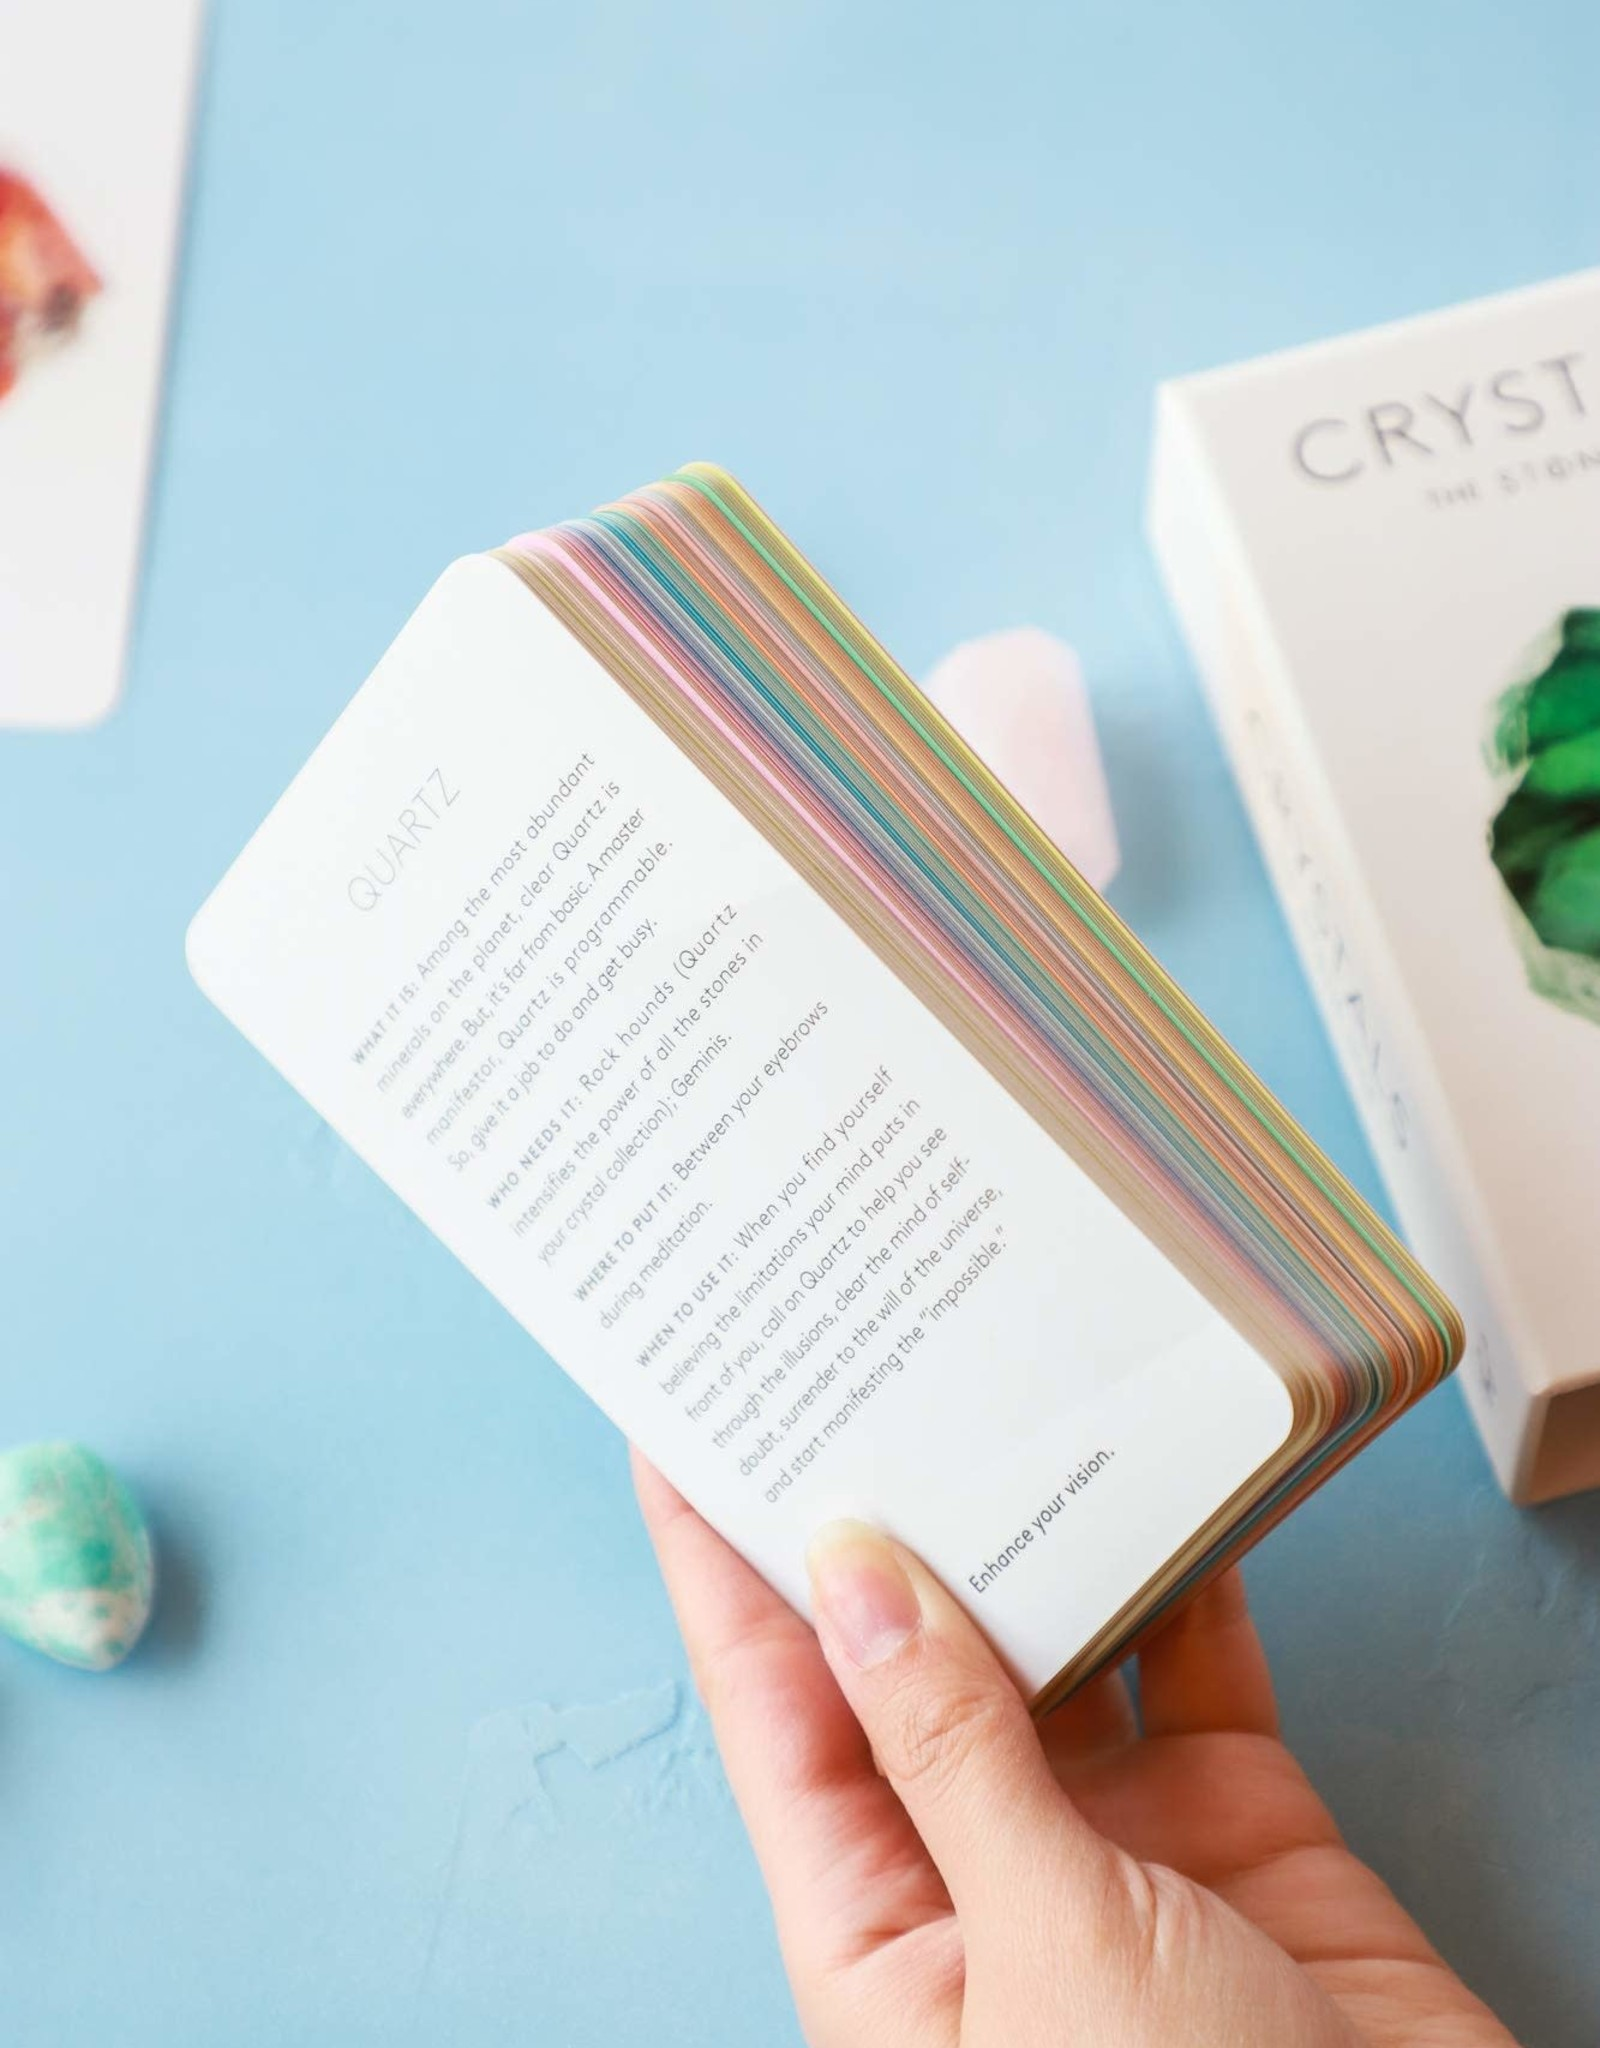 Chronicle Books Crystals The Stone Deck